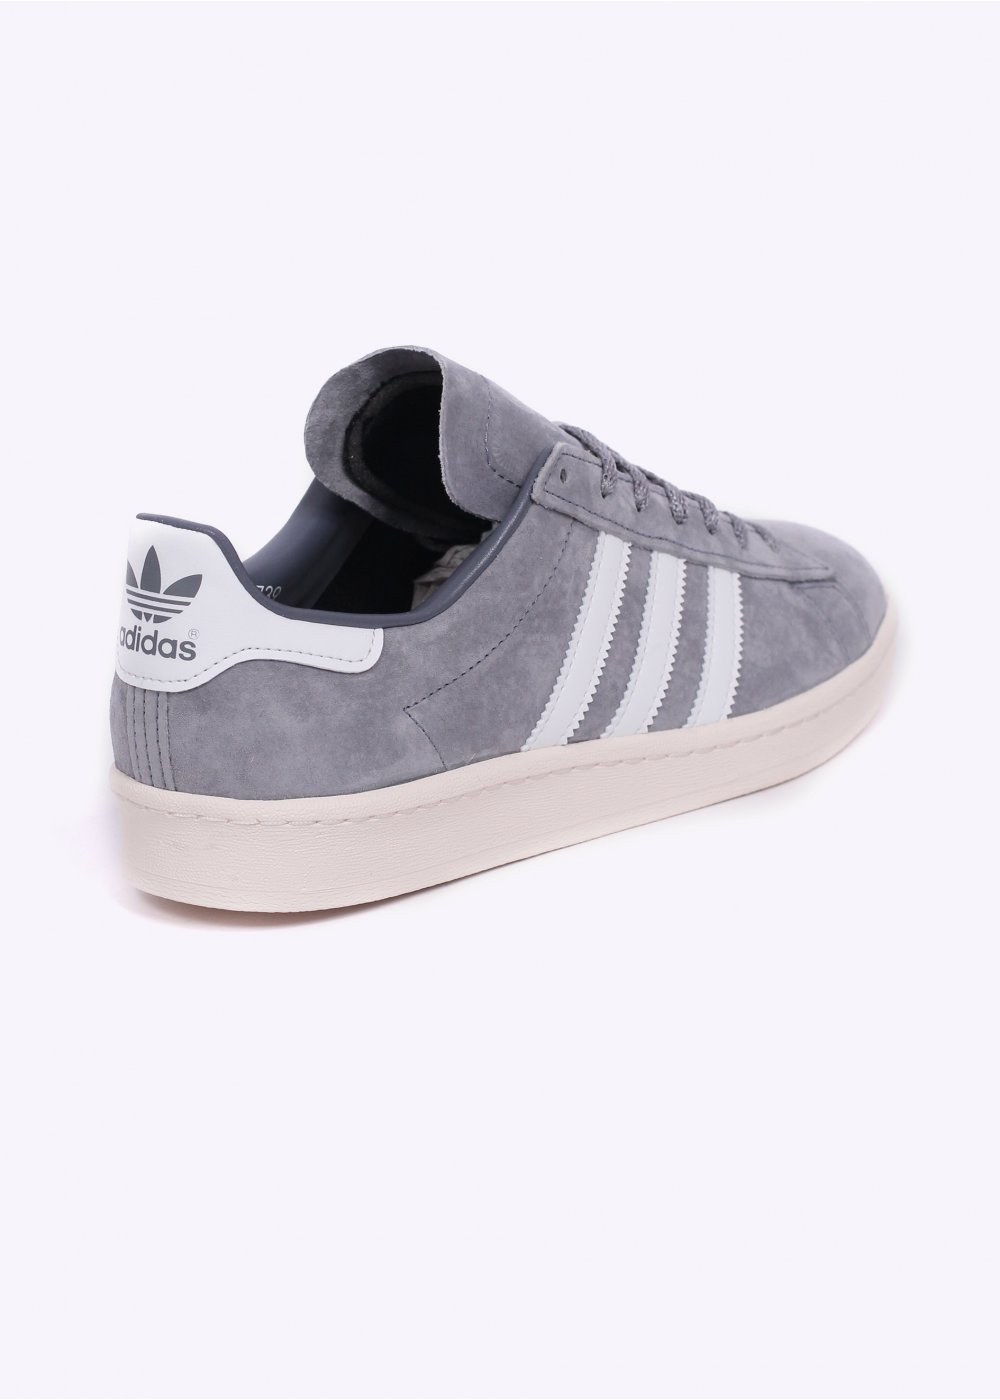 Adidas Originals Originals Top Ten Low Sneaker In Black: Adidas Originals Campus 80's Japan Trainers